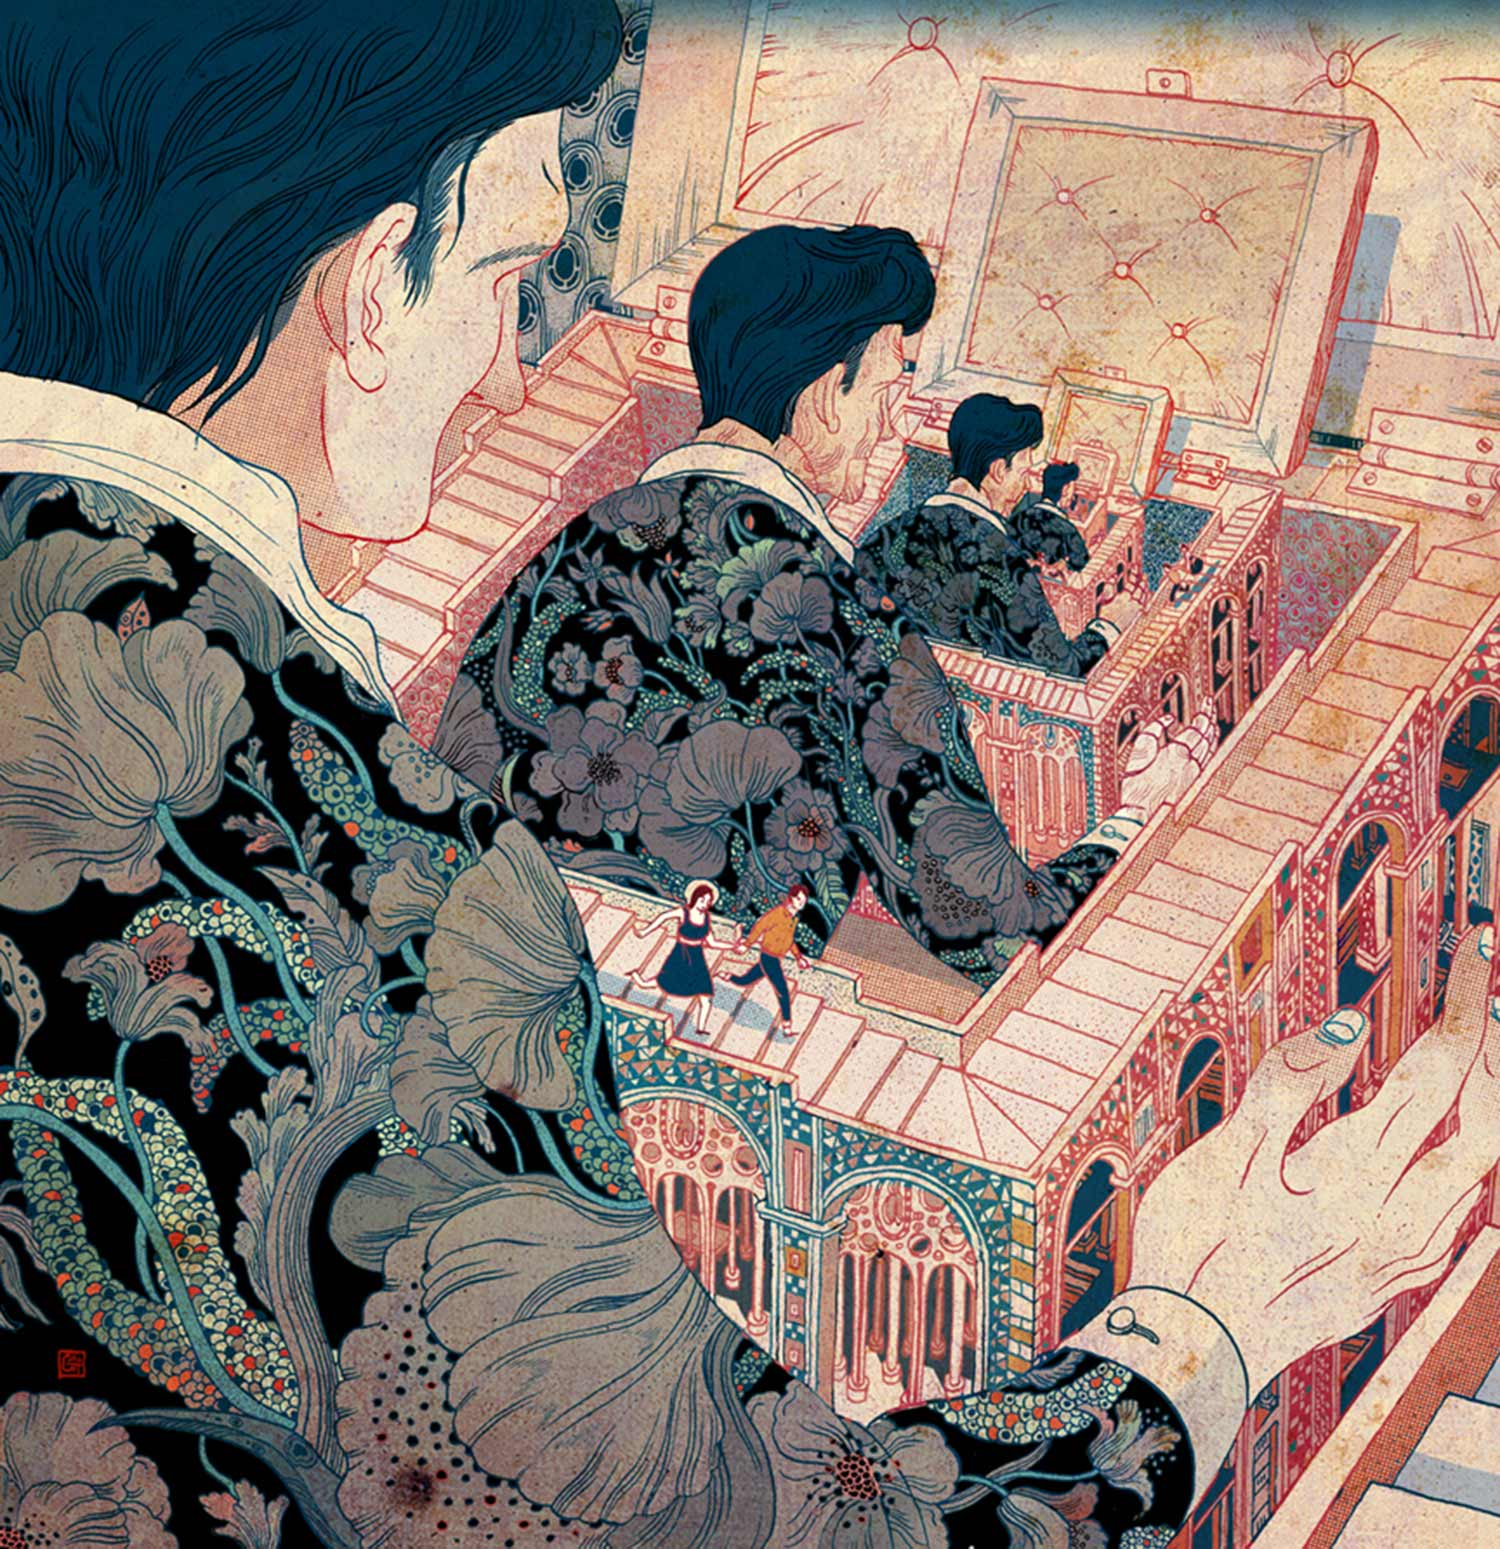 elaborate illustration, Victo Ngai has lived in five different countries, all of which influence her illustrative style.